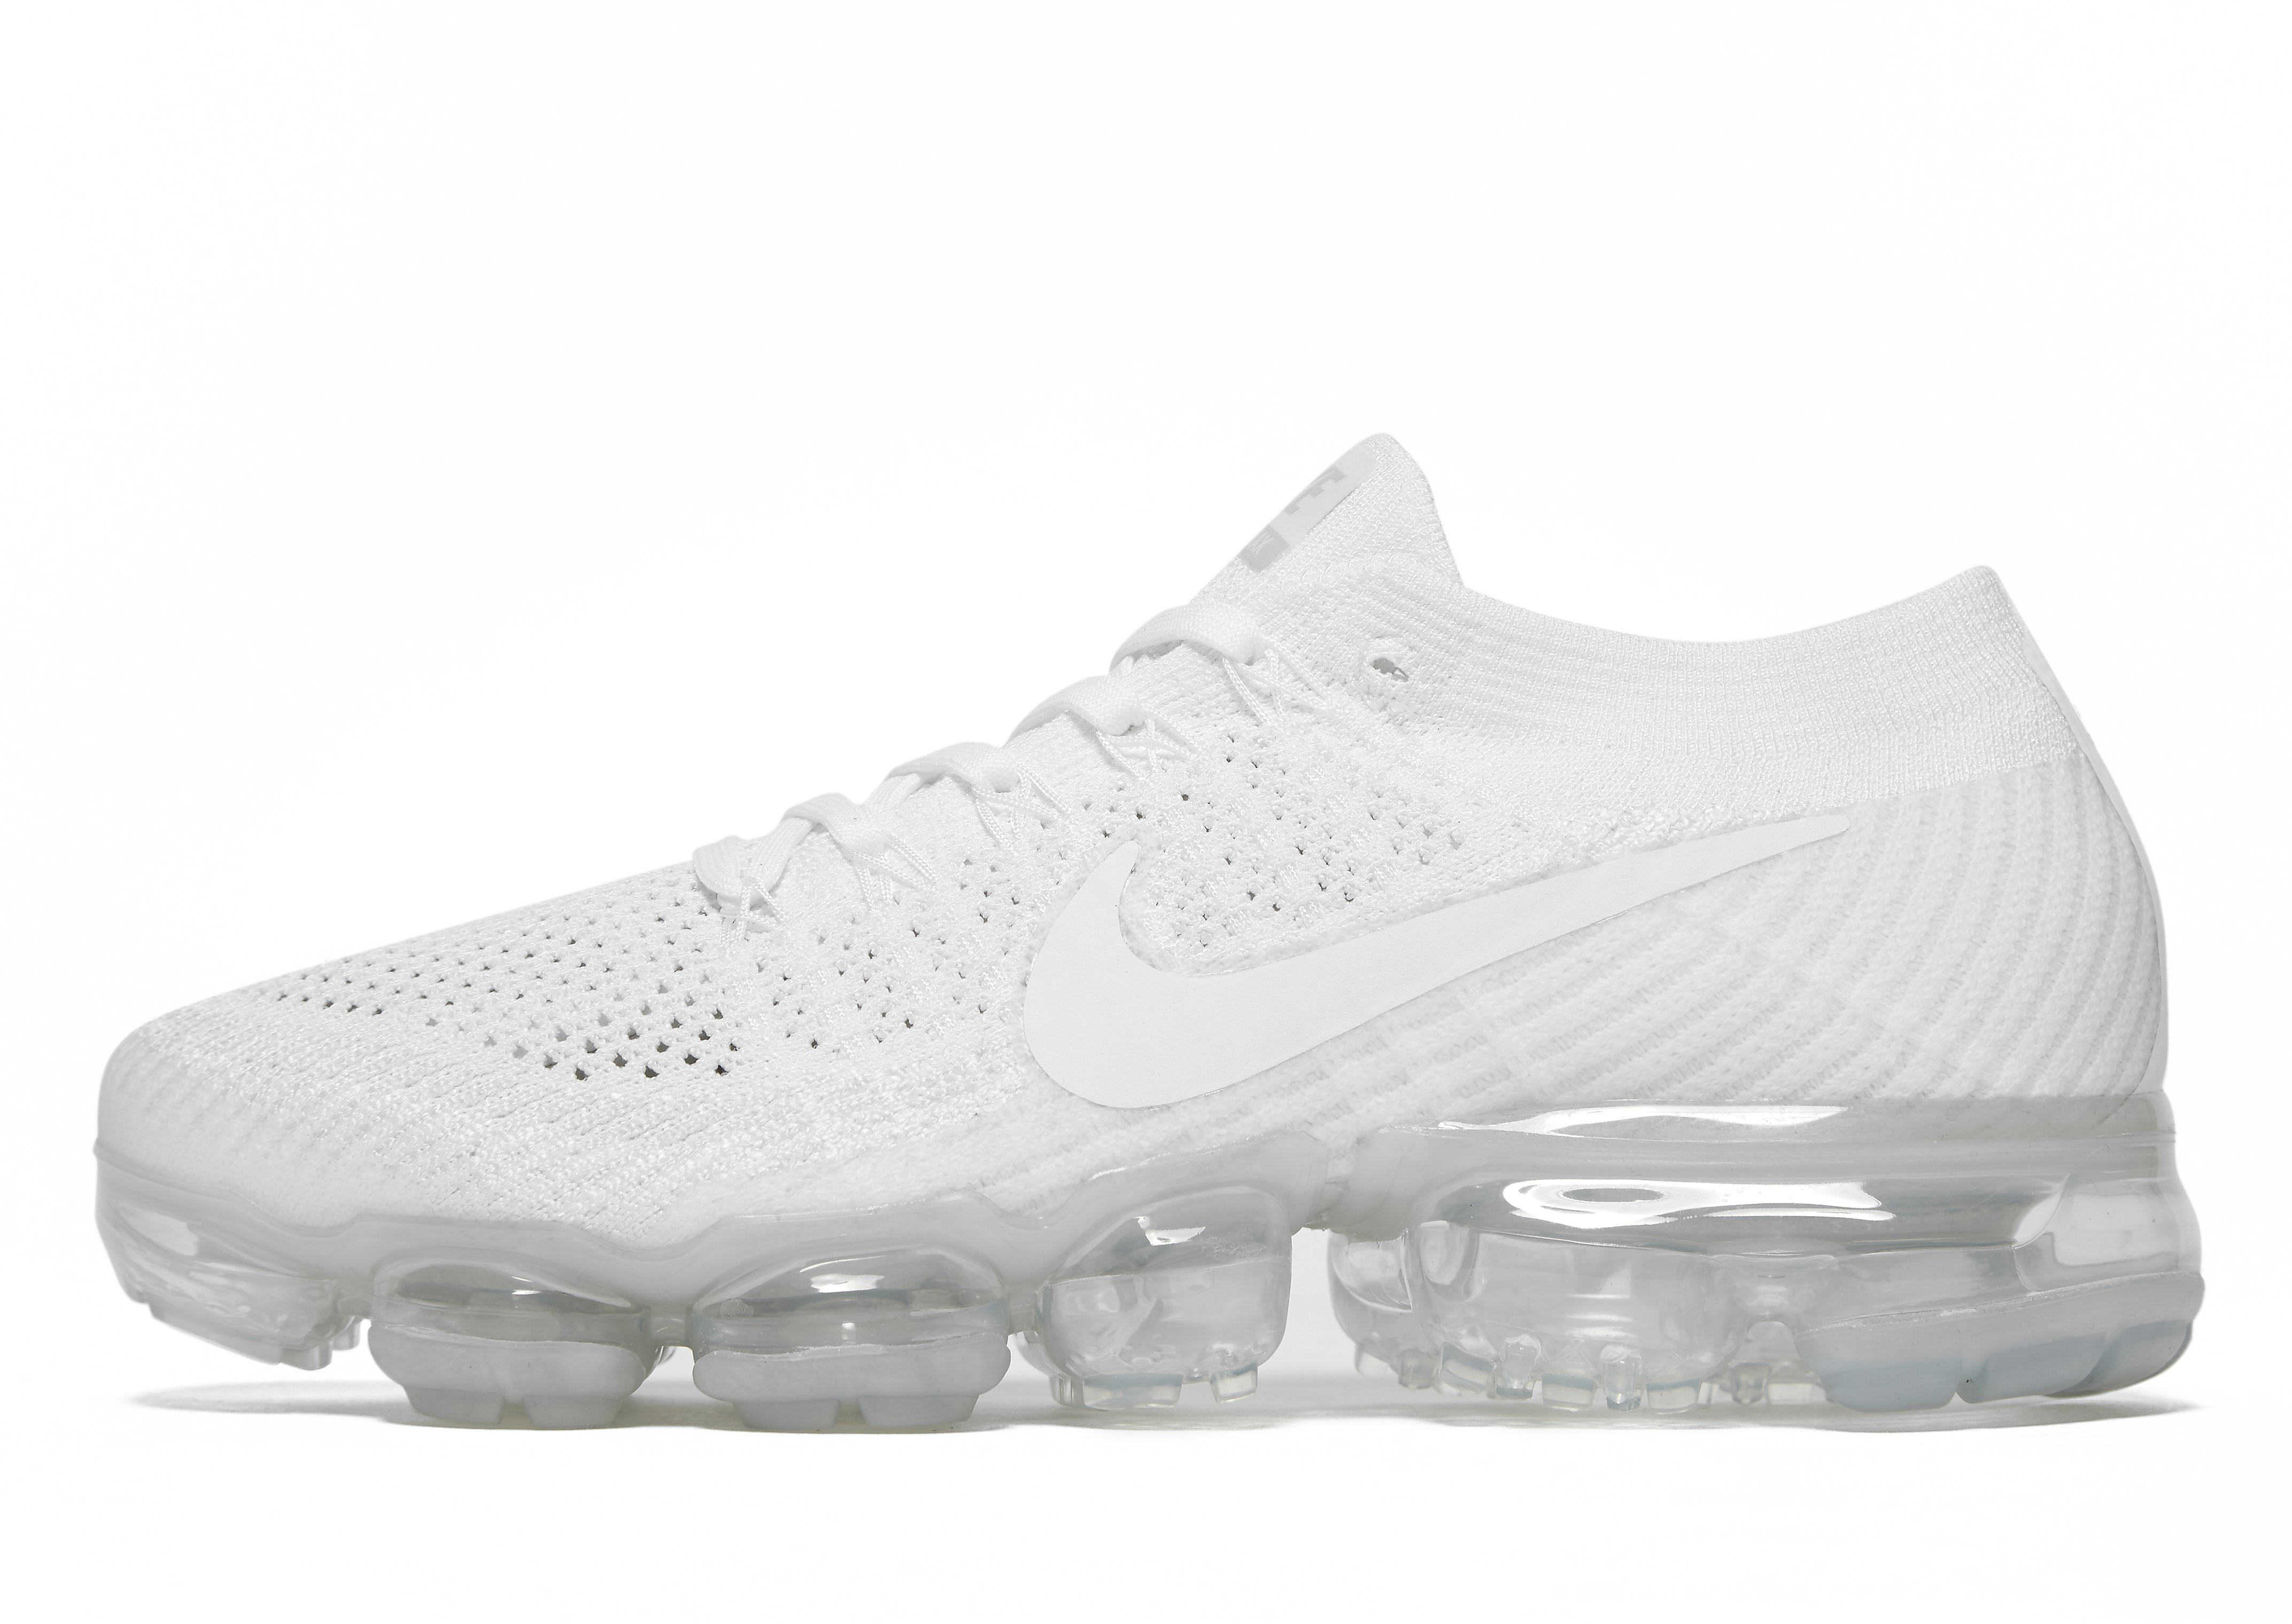 Nike Air VaporMax Flyknit - White/Grey - Mens, White/Grey